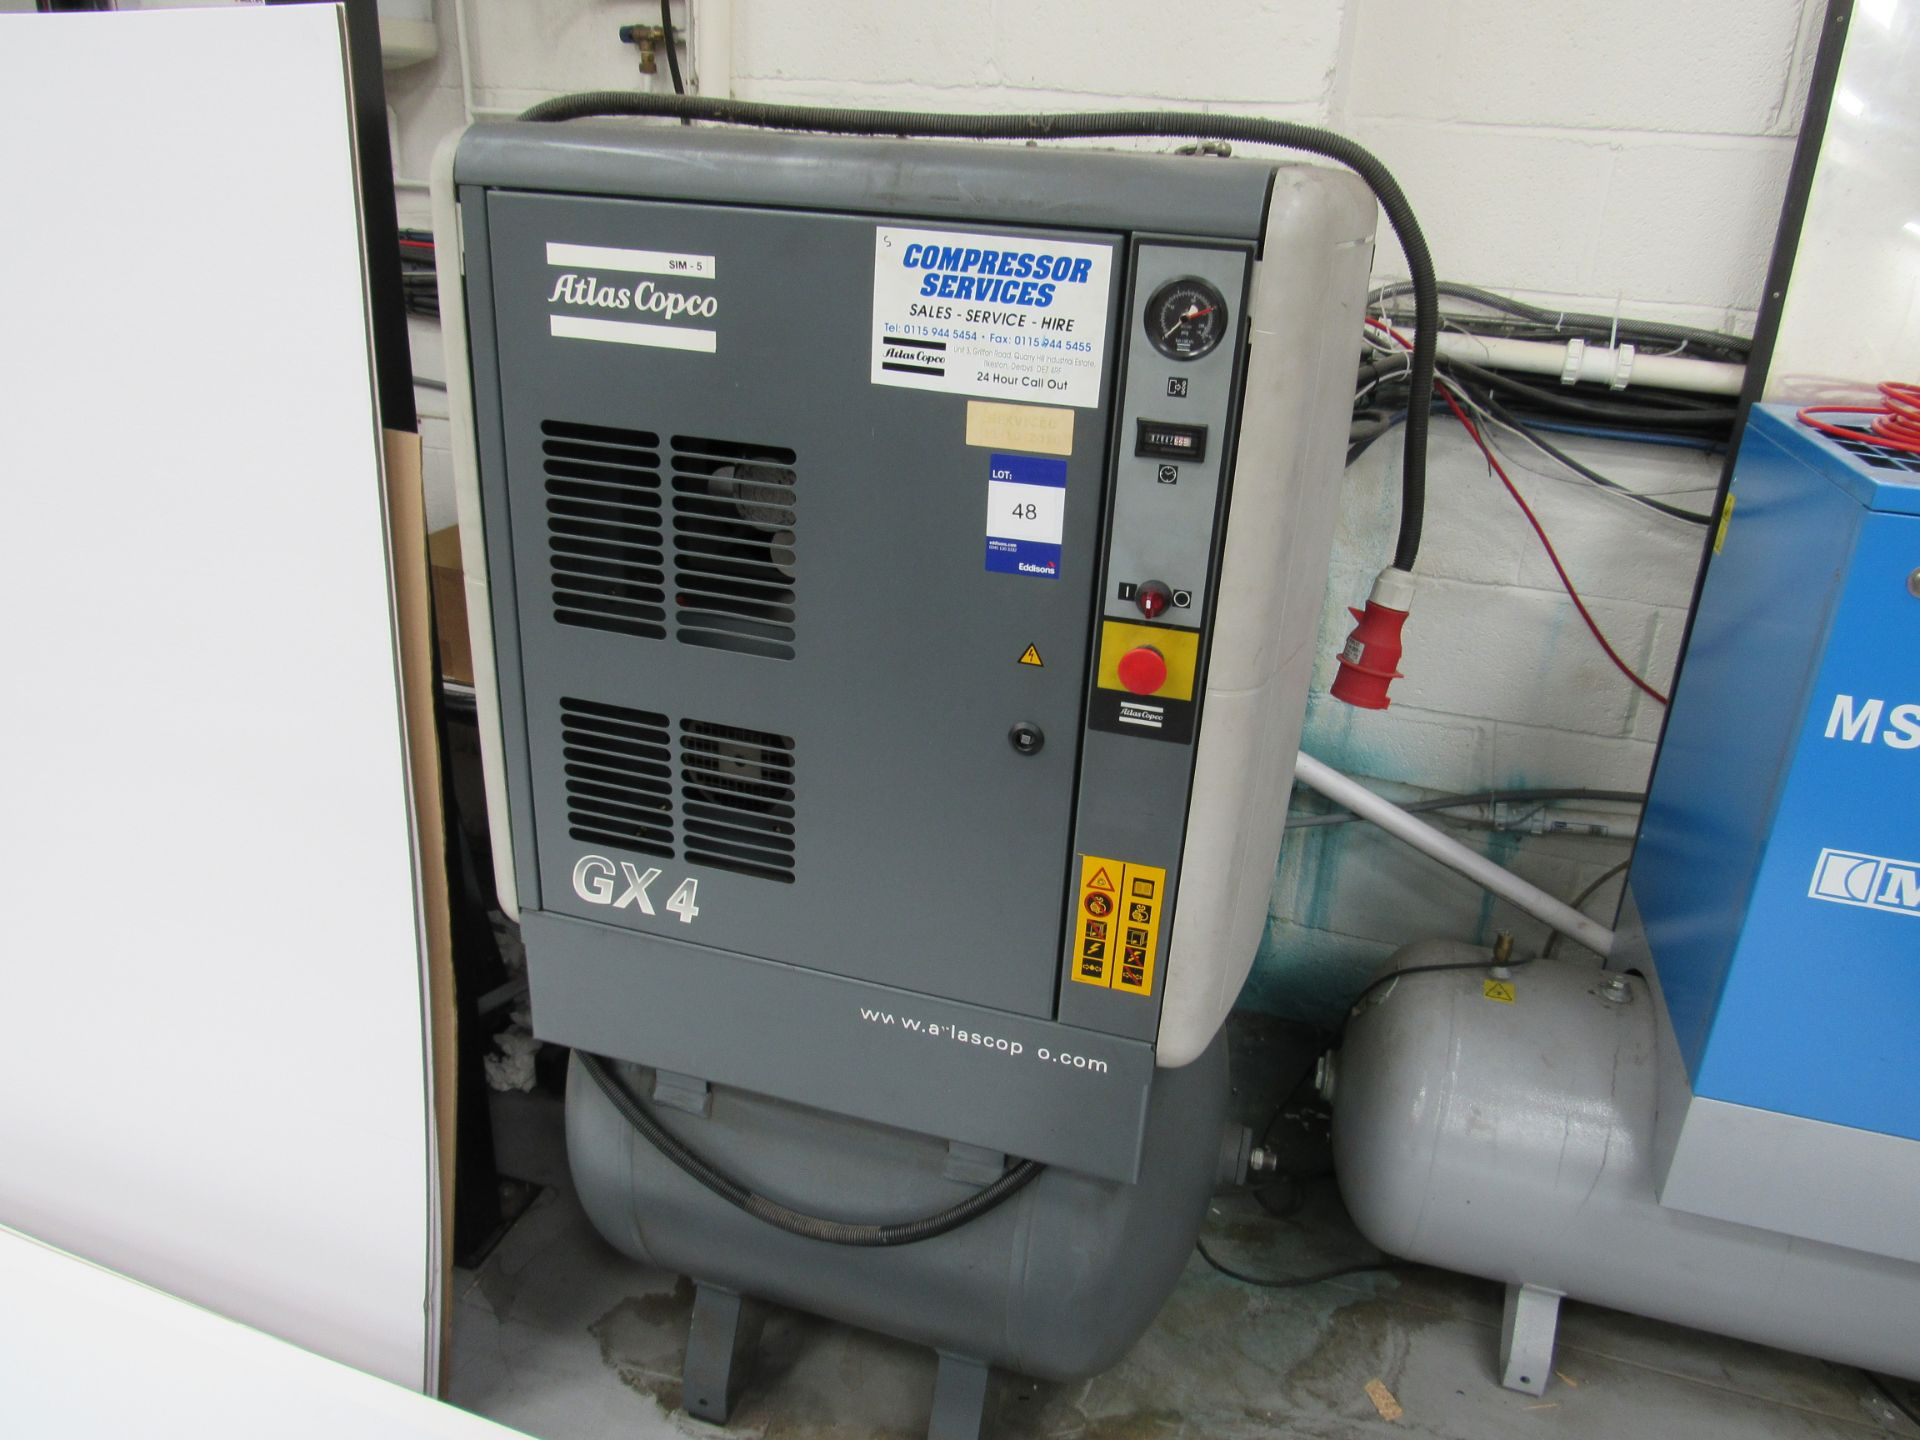 Atlas Copco GX4 Receiver Mounted Compressor, 7847 Hours, Serial Number AII 640067, 2001 - Image 2 of 5